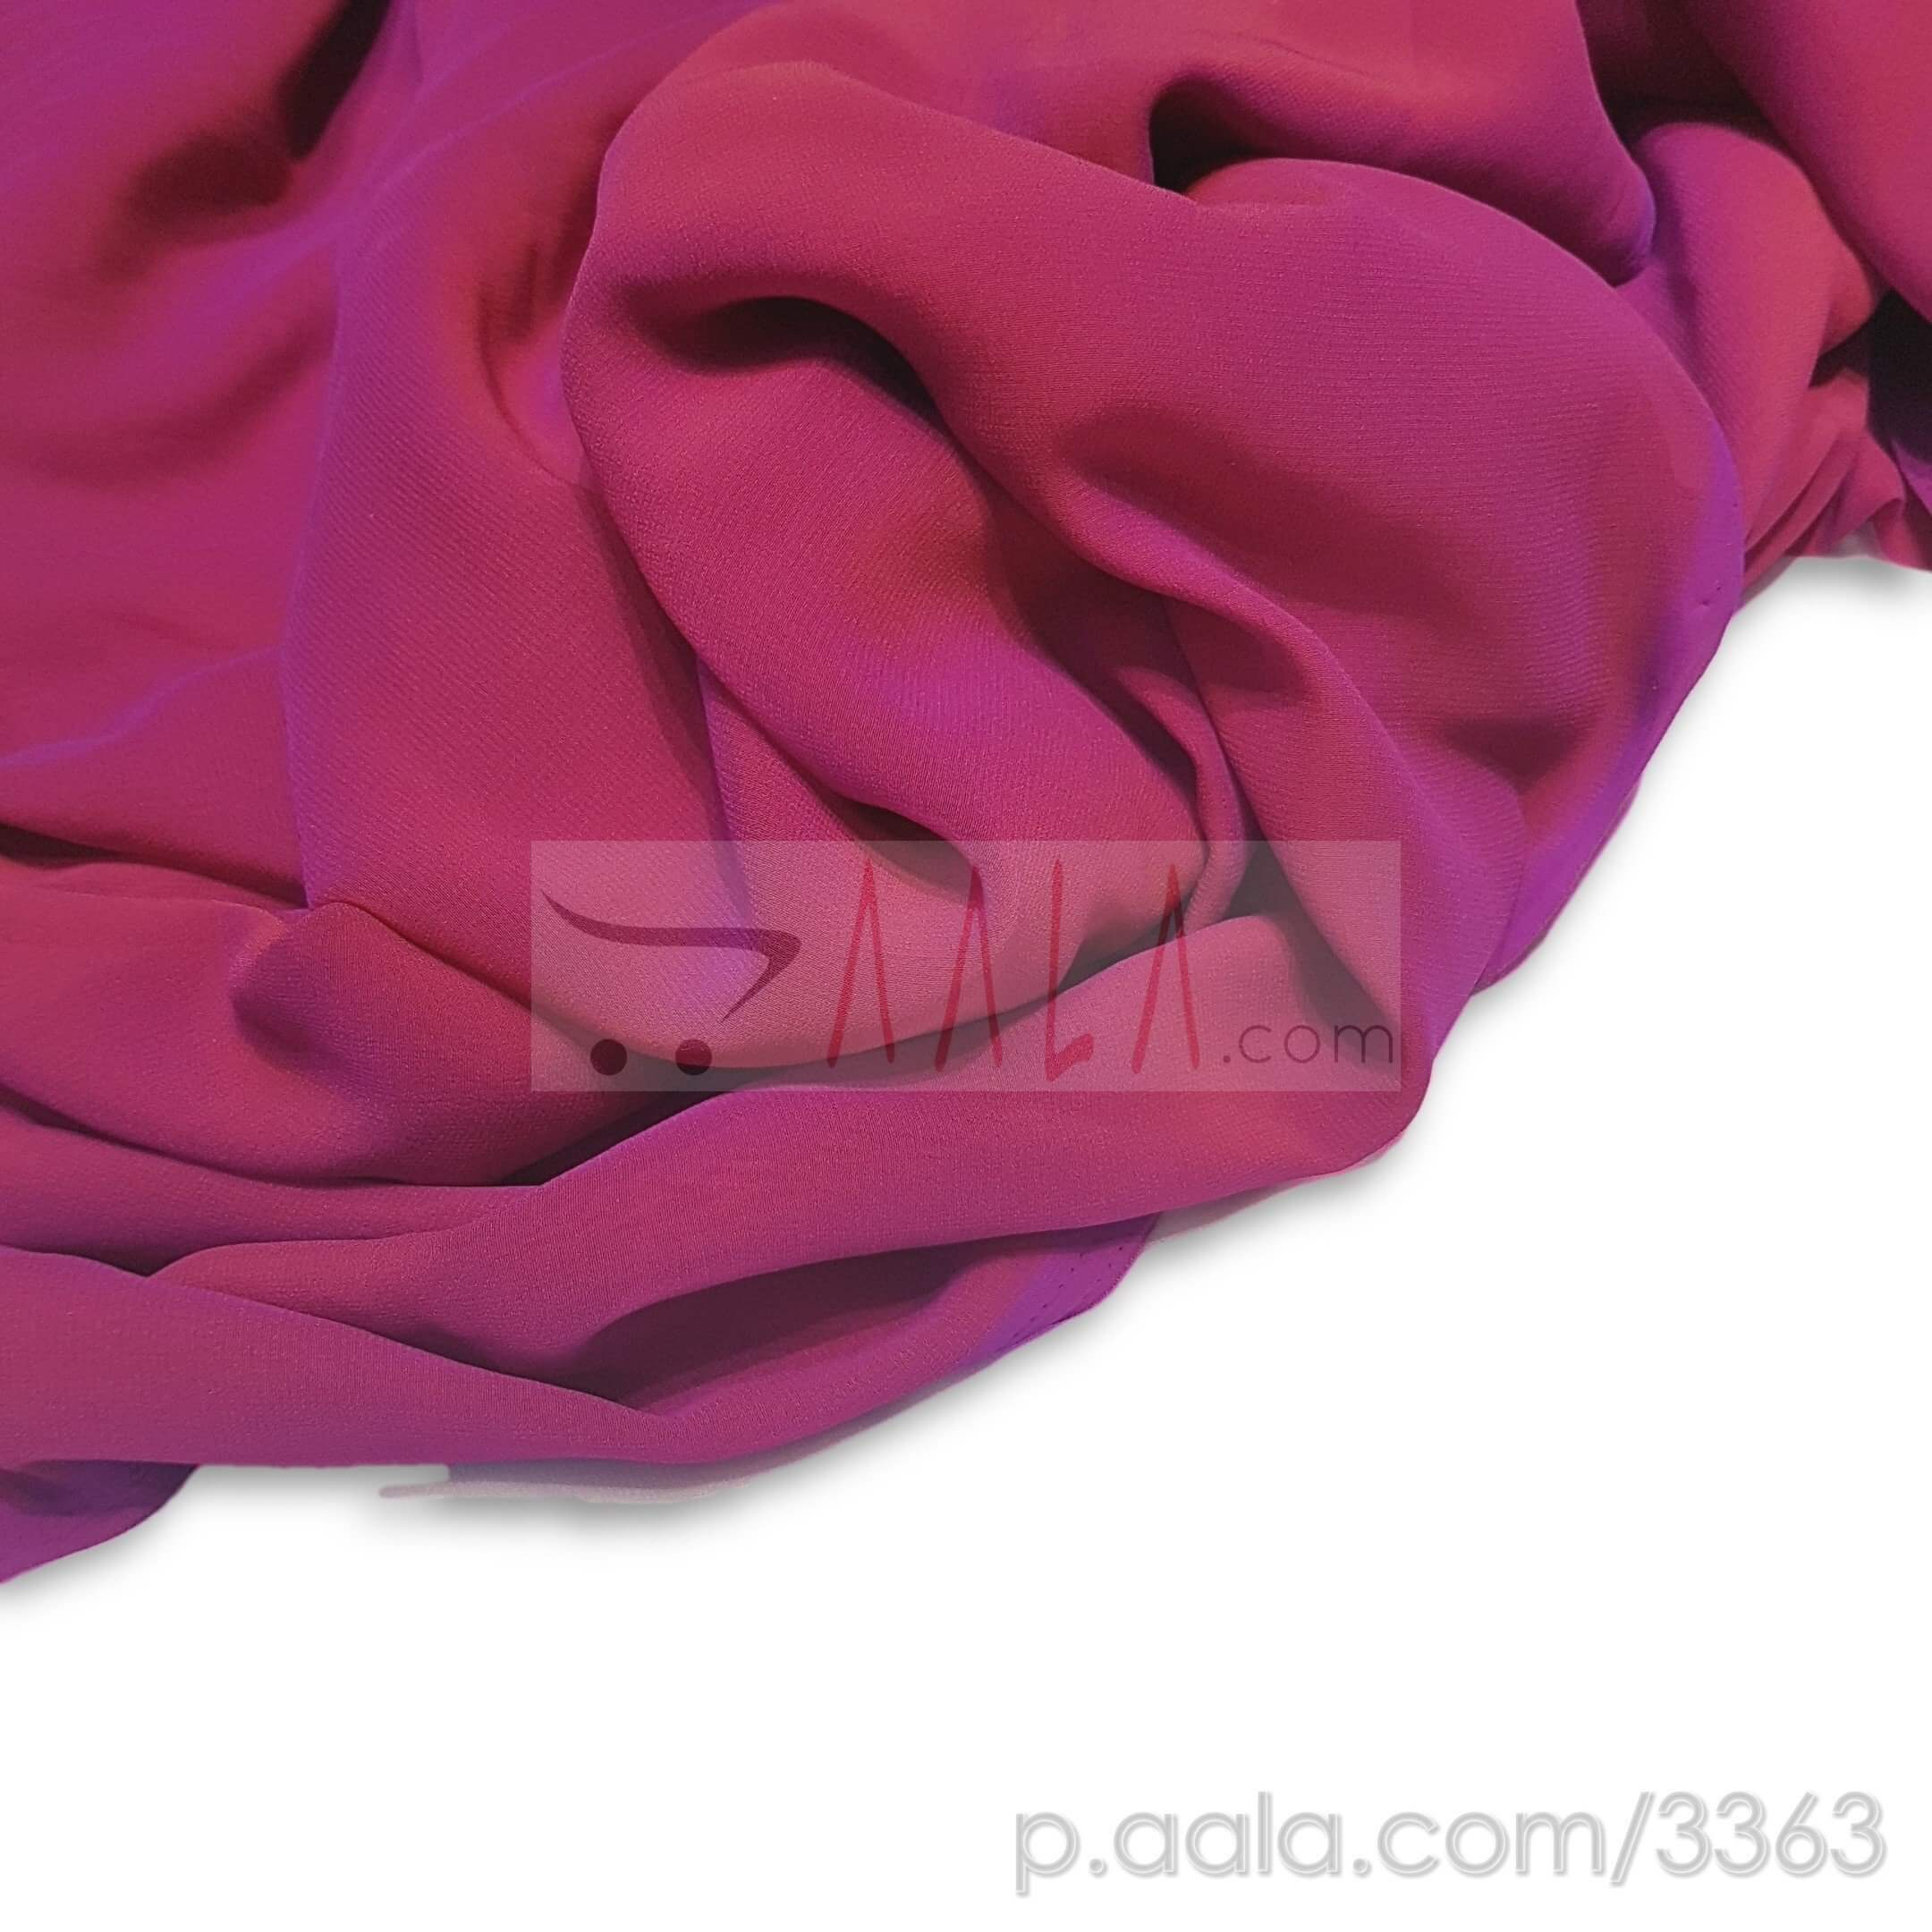 PT Tone Georgette Poly-ester 44 Inches Dyed Per Metre #3363